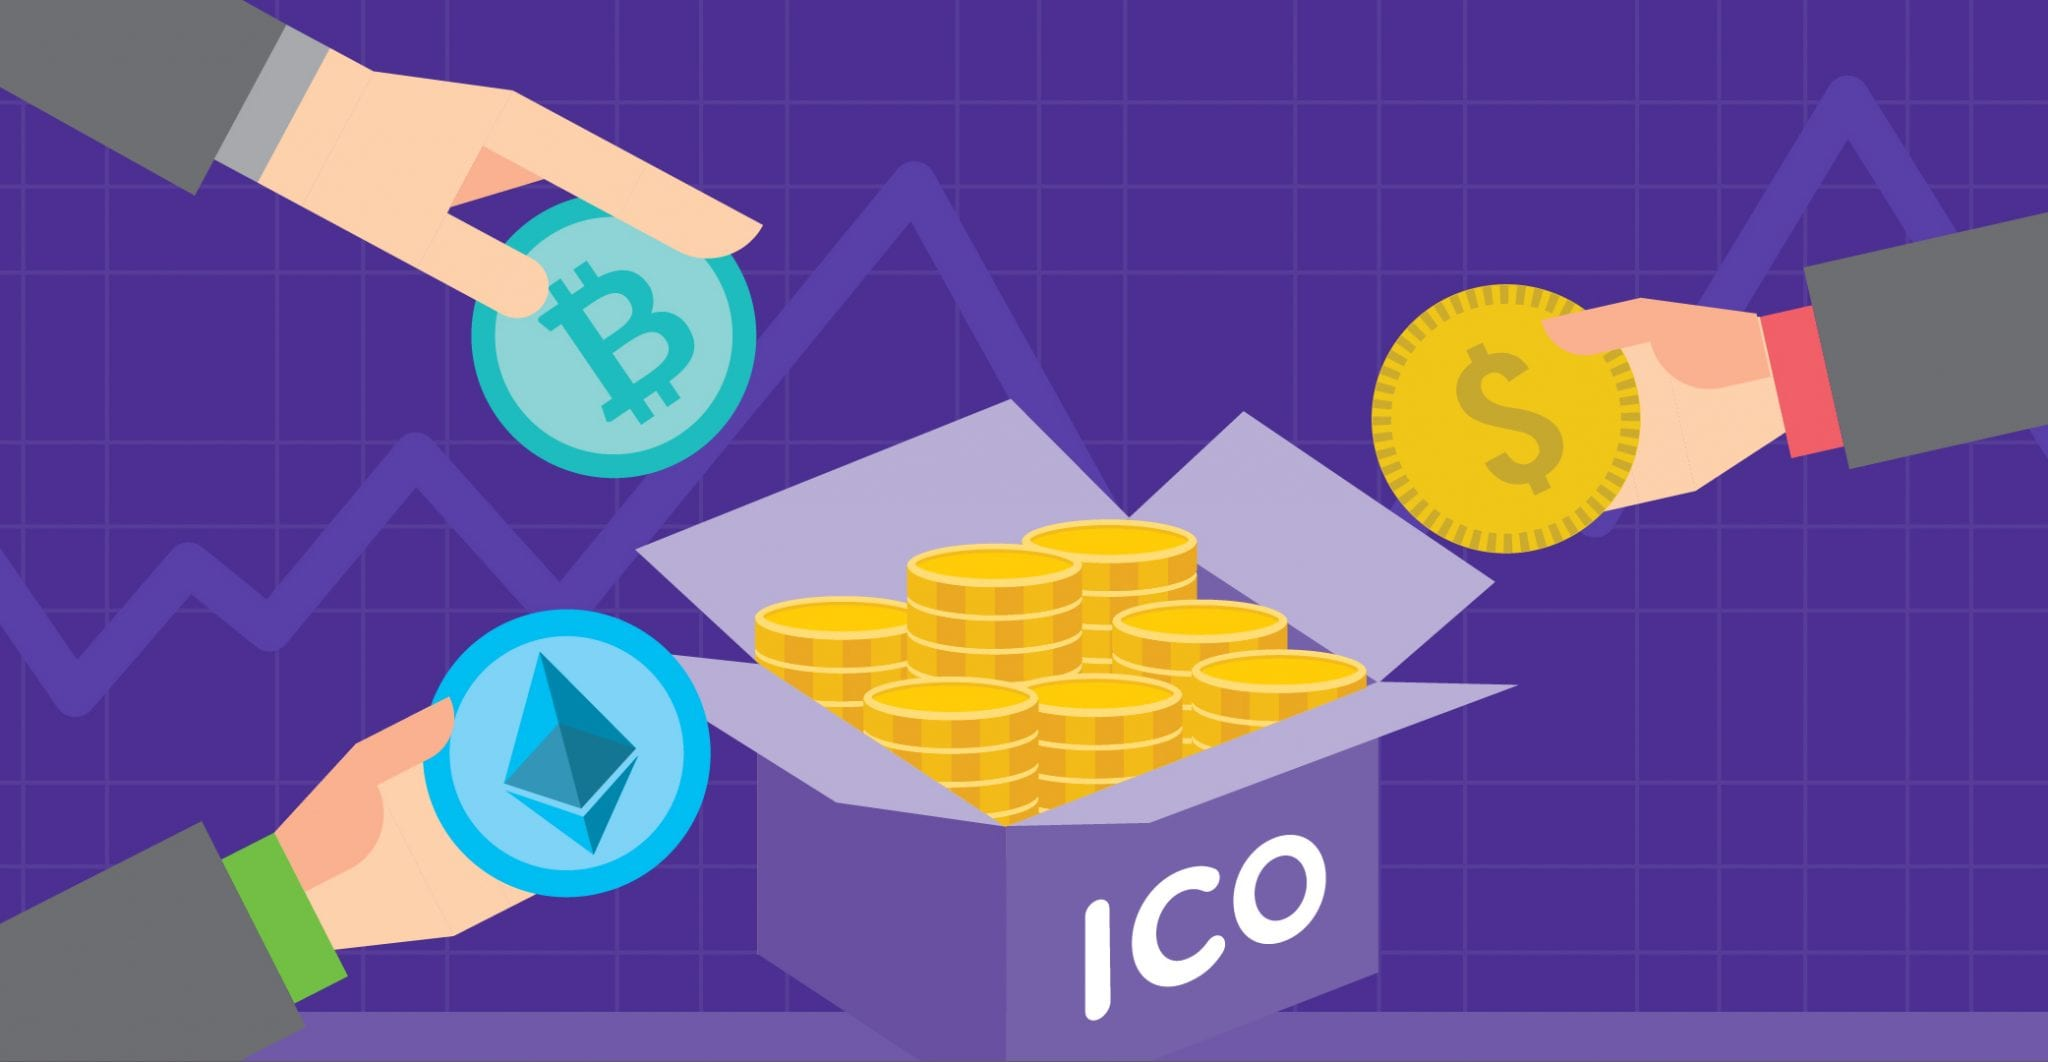 The best ICO to invest in 2018 - Three ICOs Worth Keeping An Eye On In Q3 2018